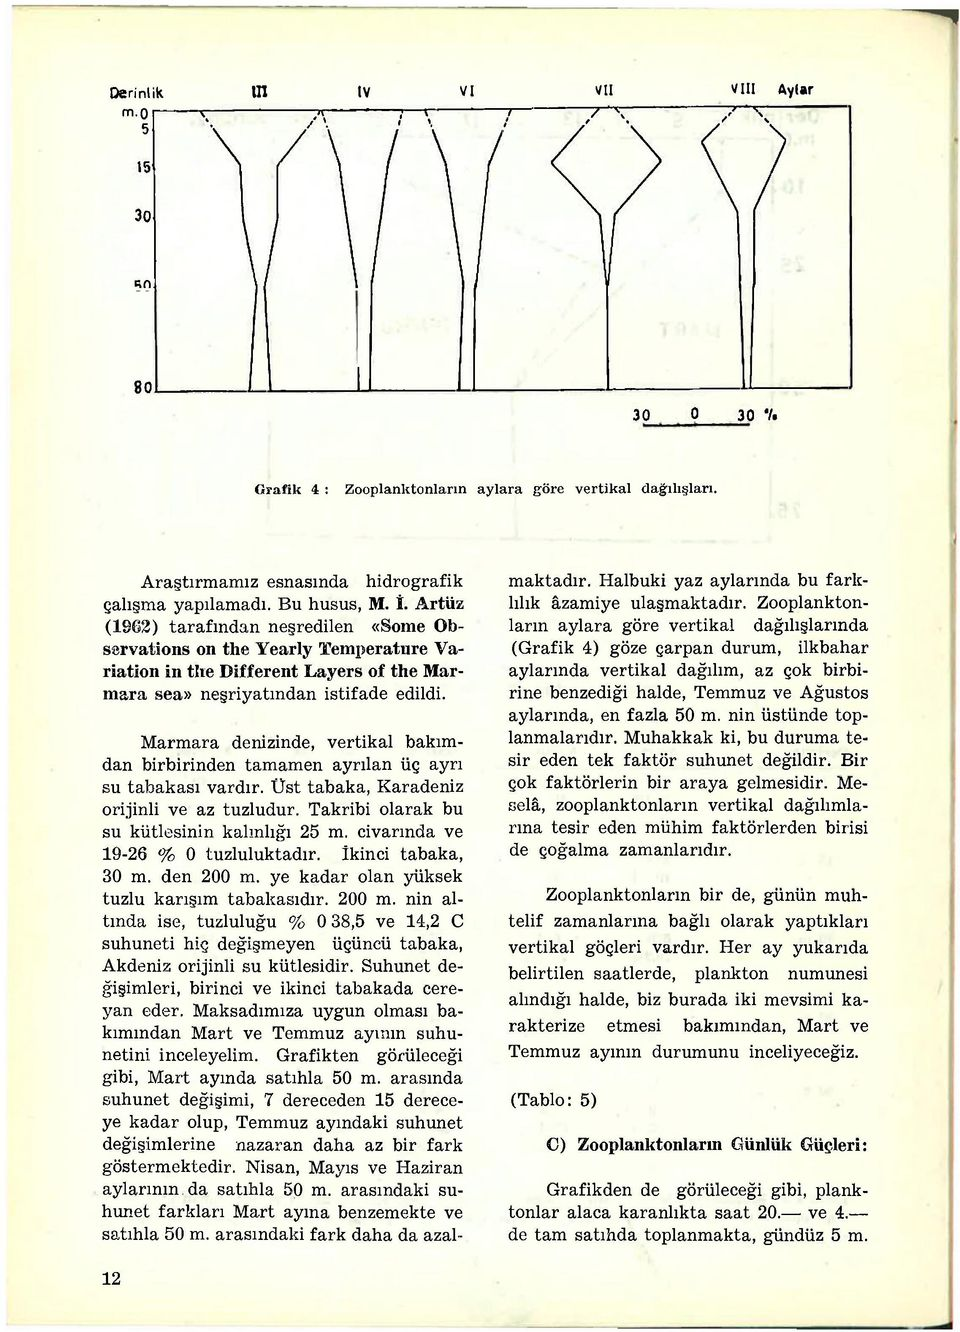 Artüz (1962) tarafından neşredilen «Some Observations on the Yearly Temperatııre Variation in tlıe Different Layers of the Marmara sea» neşriyatından istifade edildi.